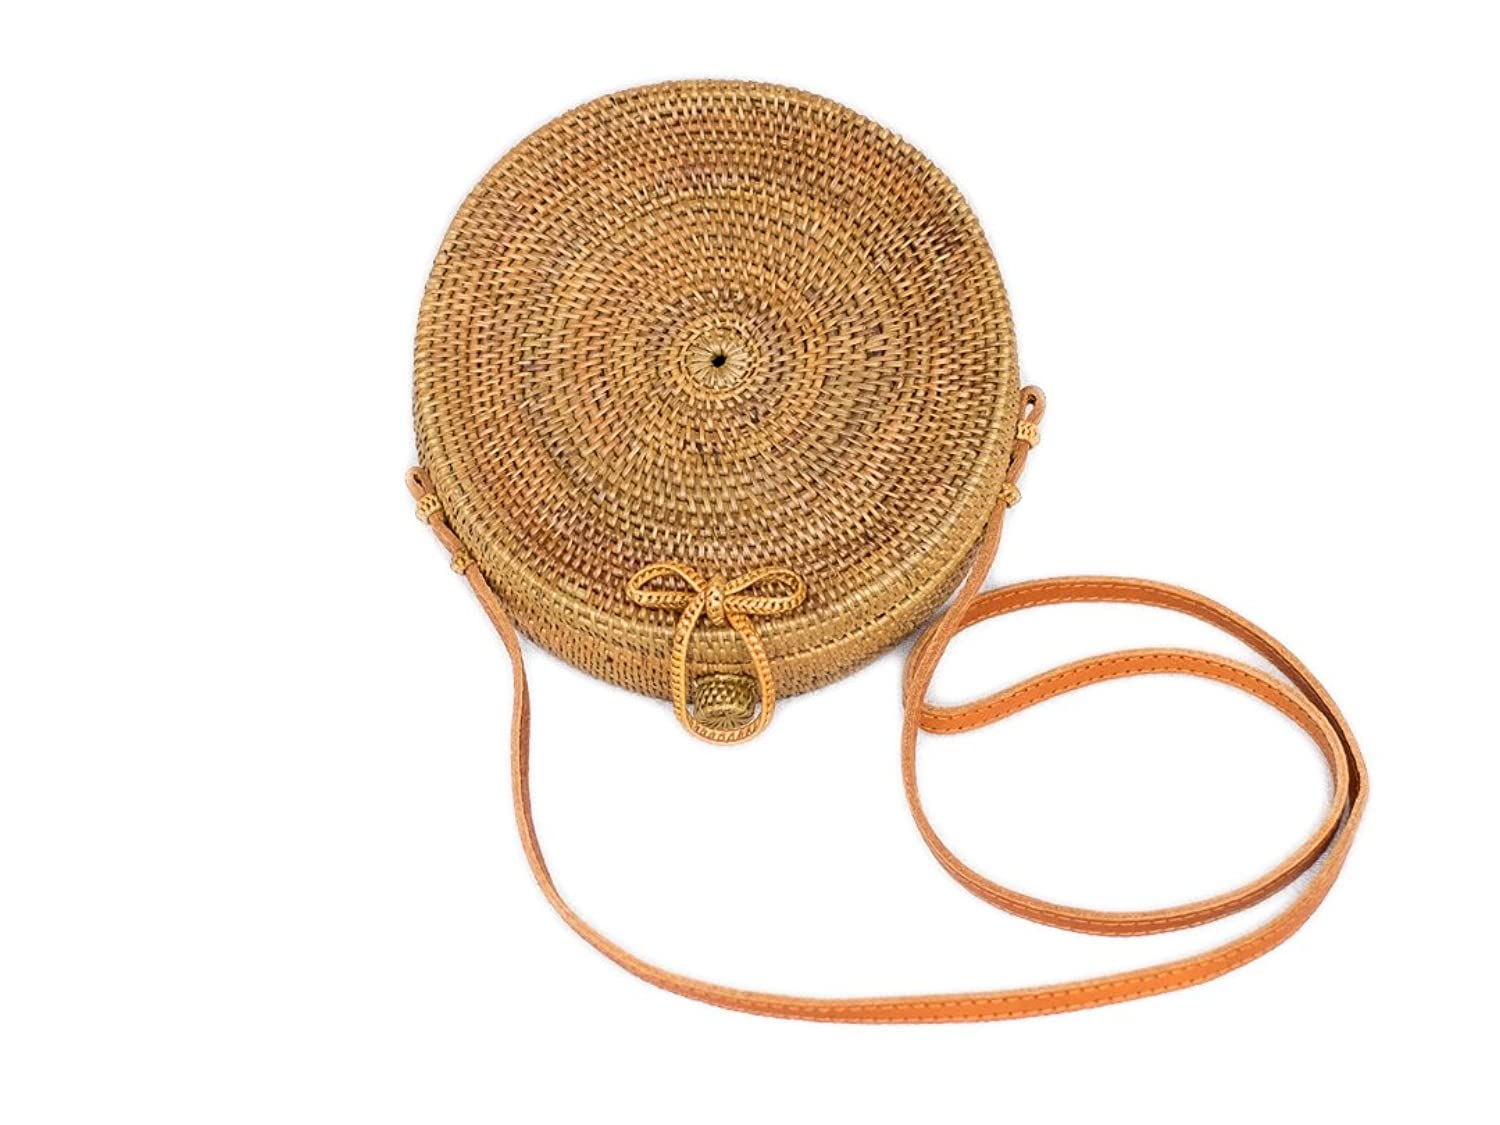 317cde2df Bali Harvest Round Woven Ata Rattan Bag with Bow Clasp